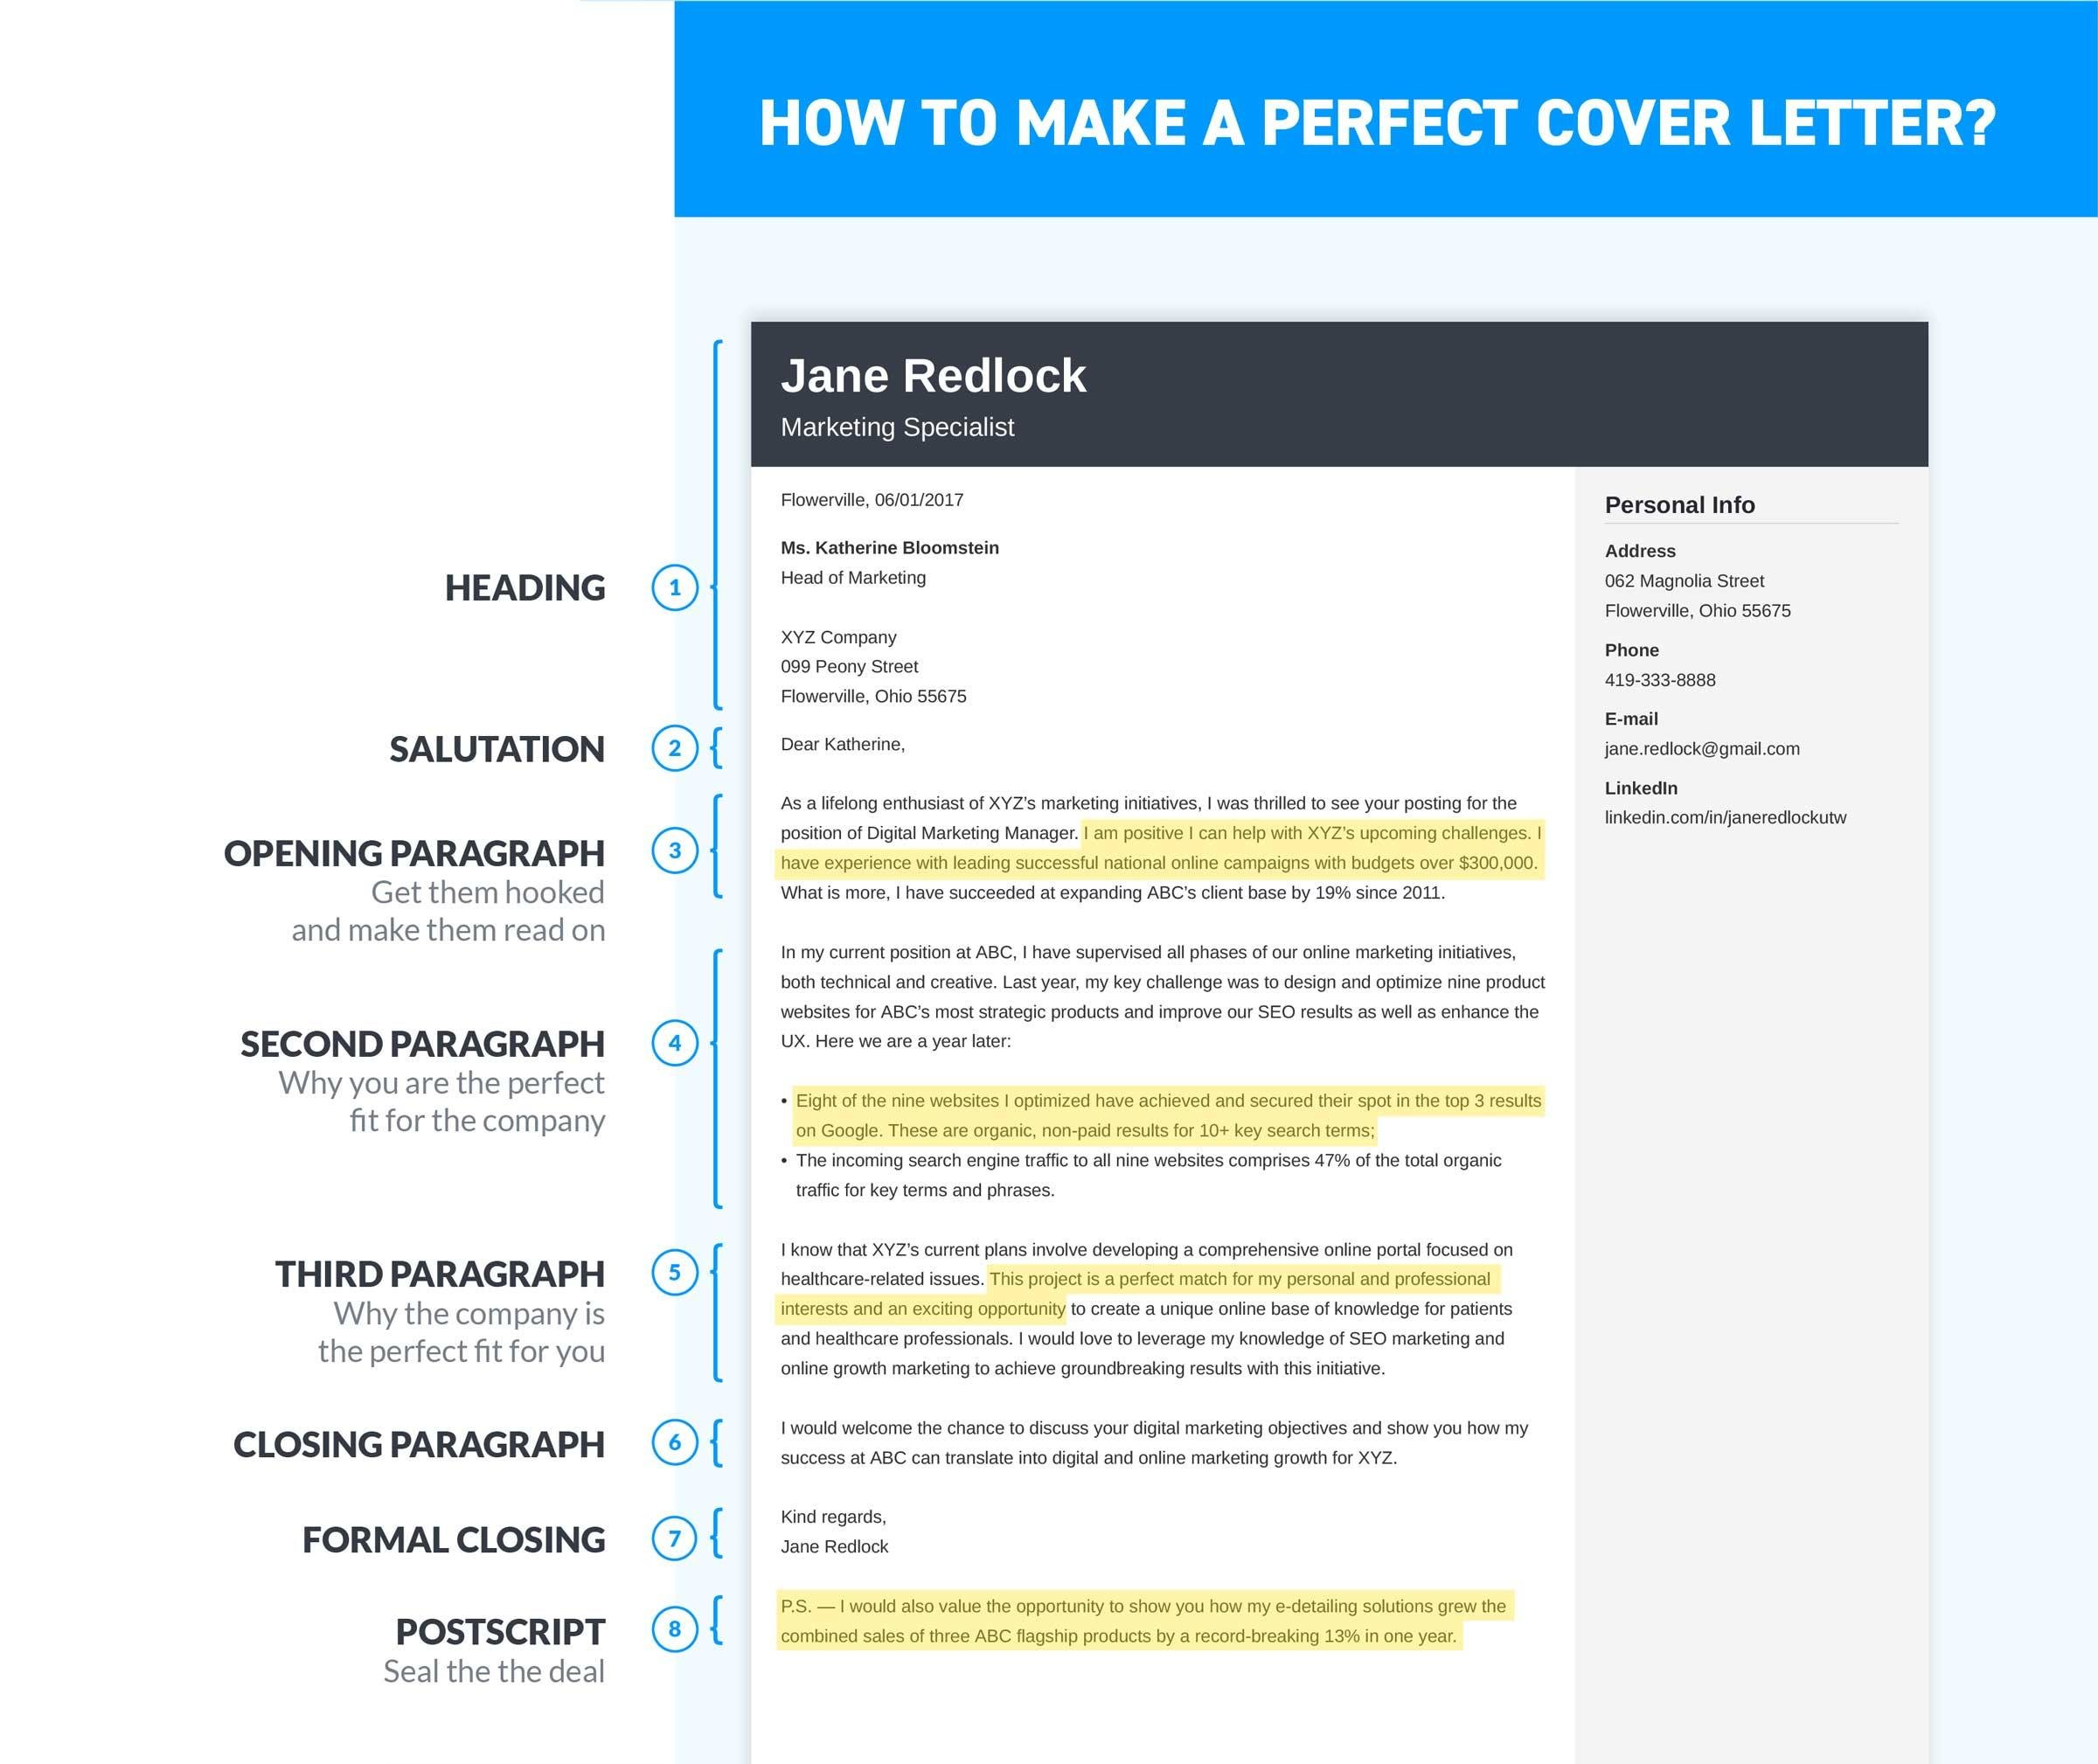 How To Make A Perfect Cover Letter Infographic  Cover Letters